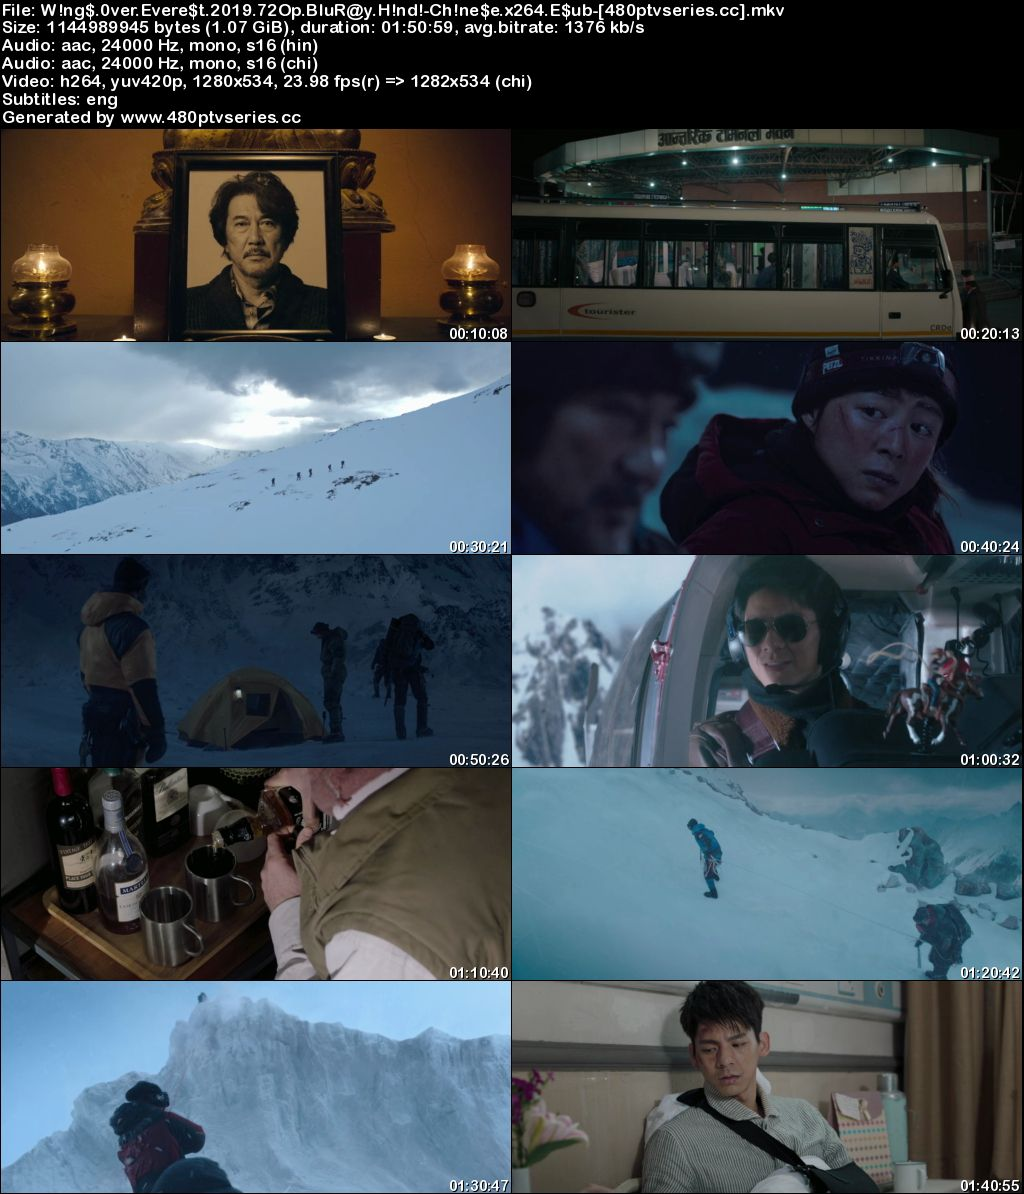 Wings Over Everest (2019) Full Hindi Dual Audio Movie Download 720p 480p Bluray Free Watch Online Full Movie Download Worldfree4u 9xmovies